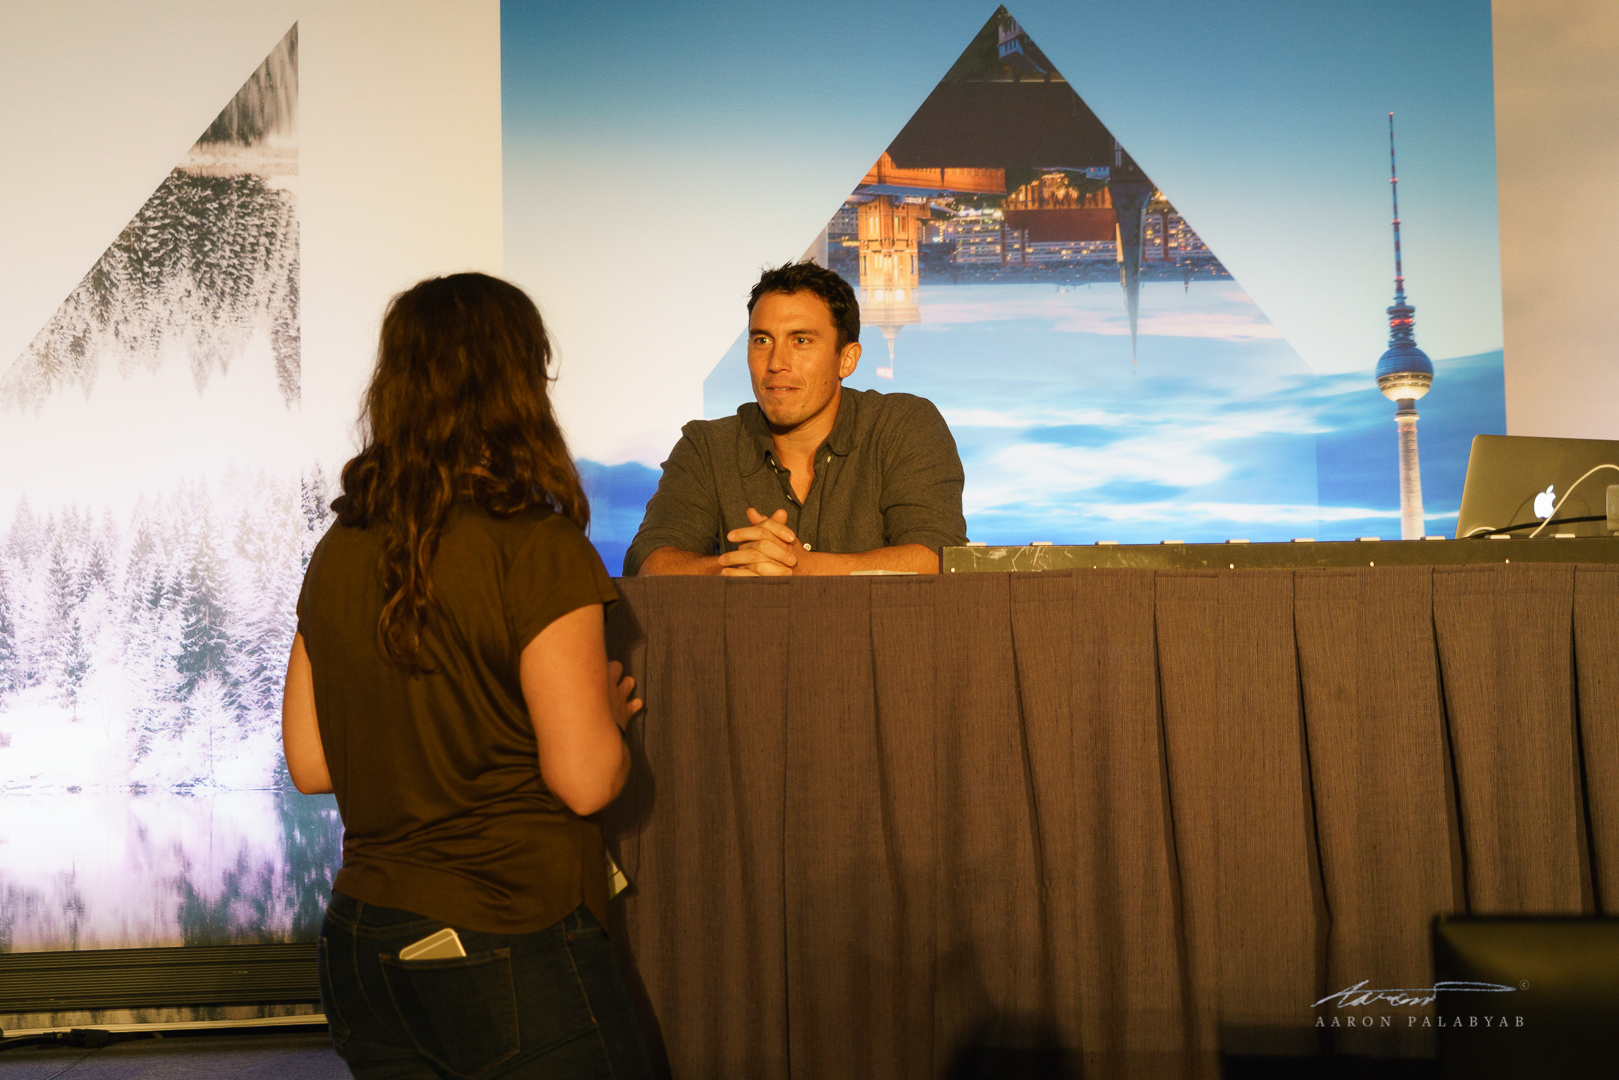 Chris Burkard speaking with one of his fans before the start of the talk